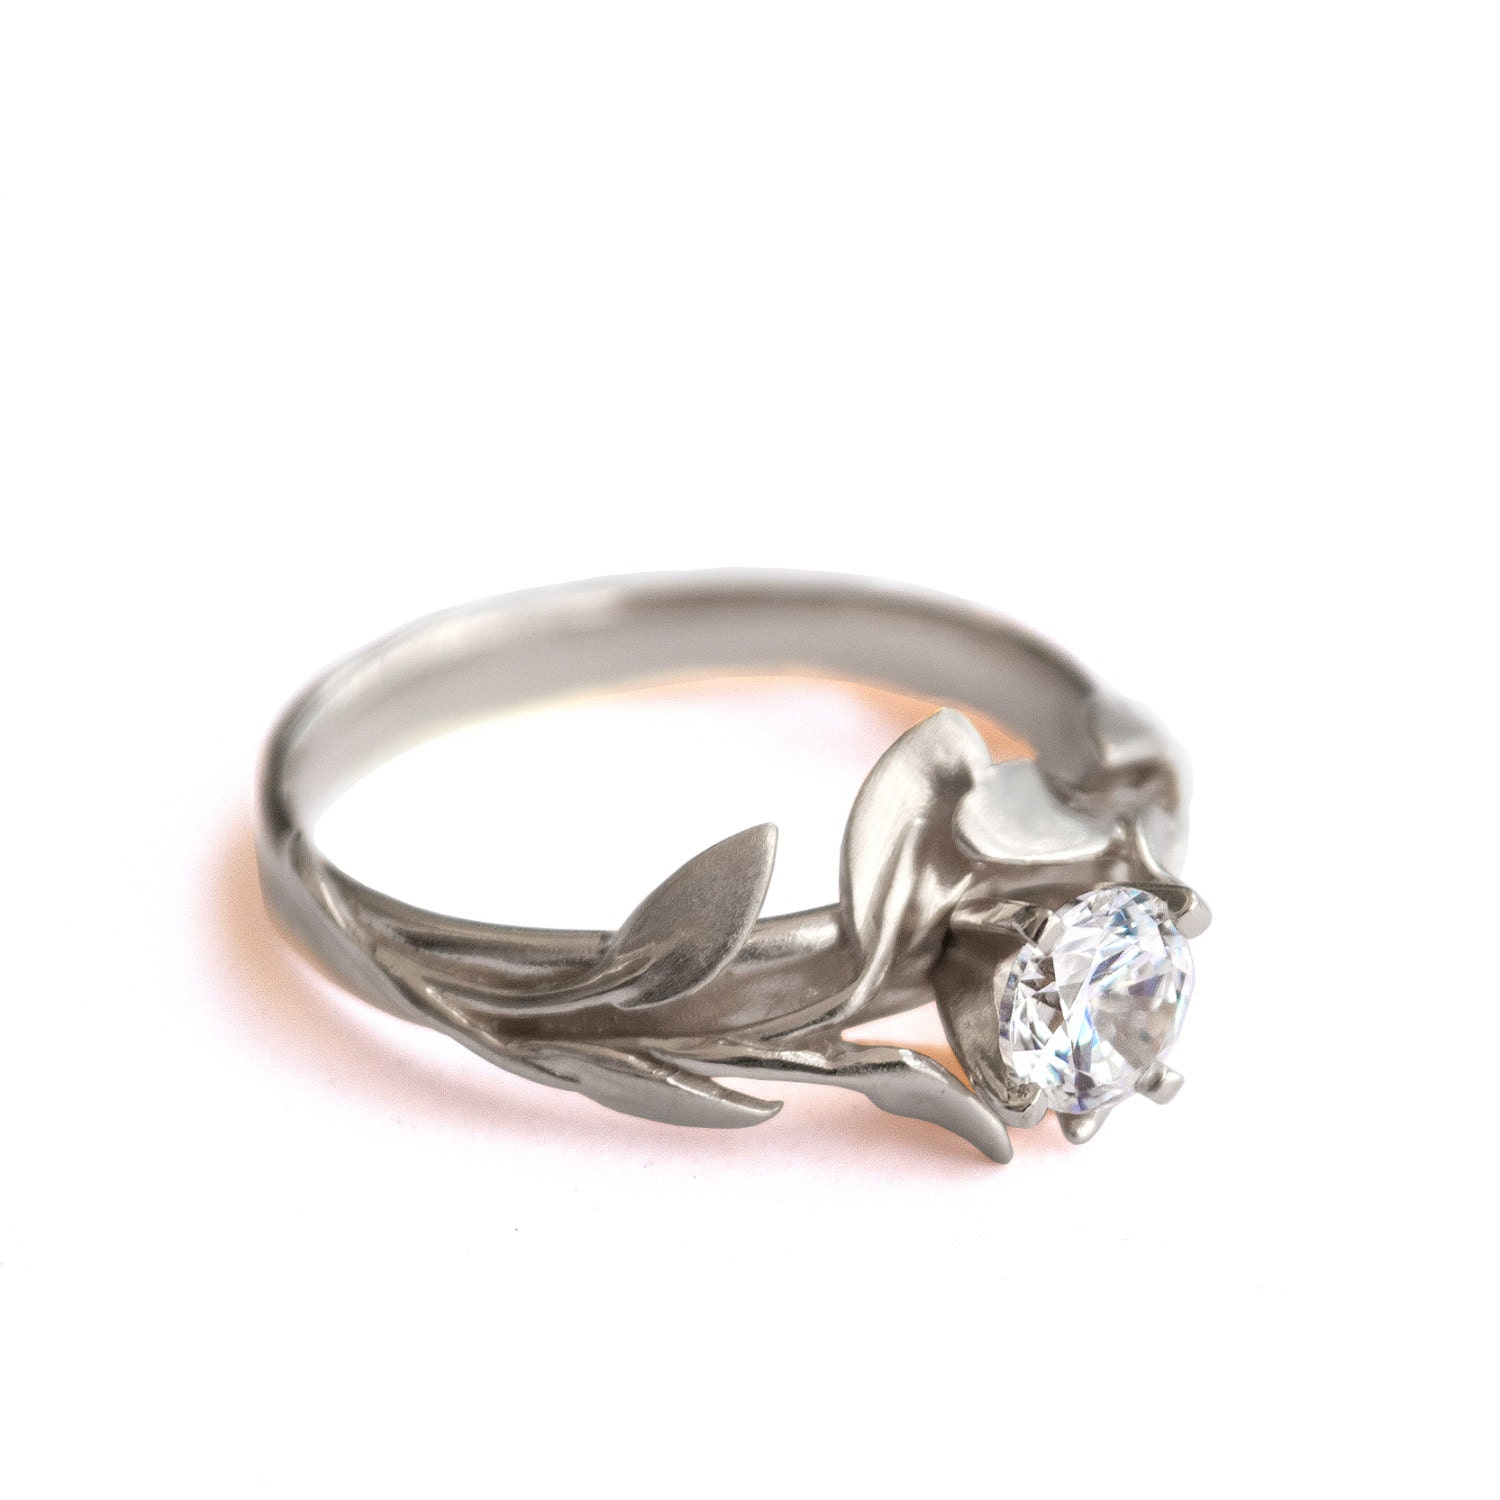 Leaves Engagement Ring No 4 18K White Gold by DoronMeravWeddings